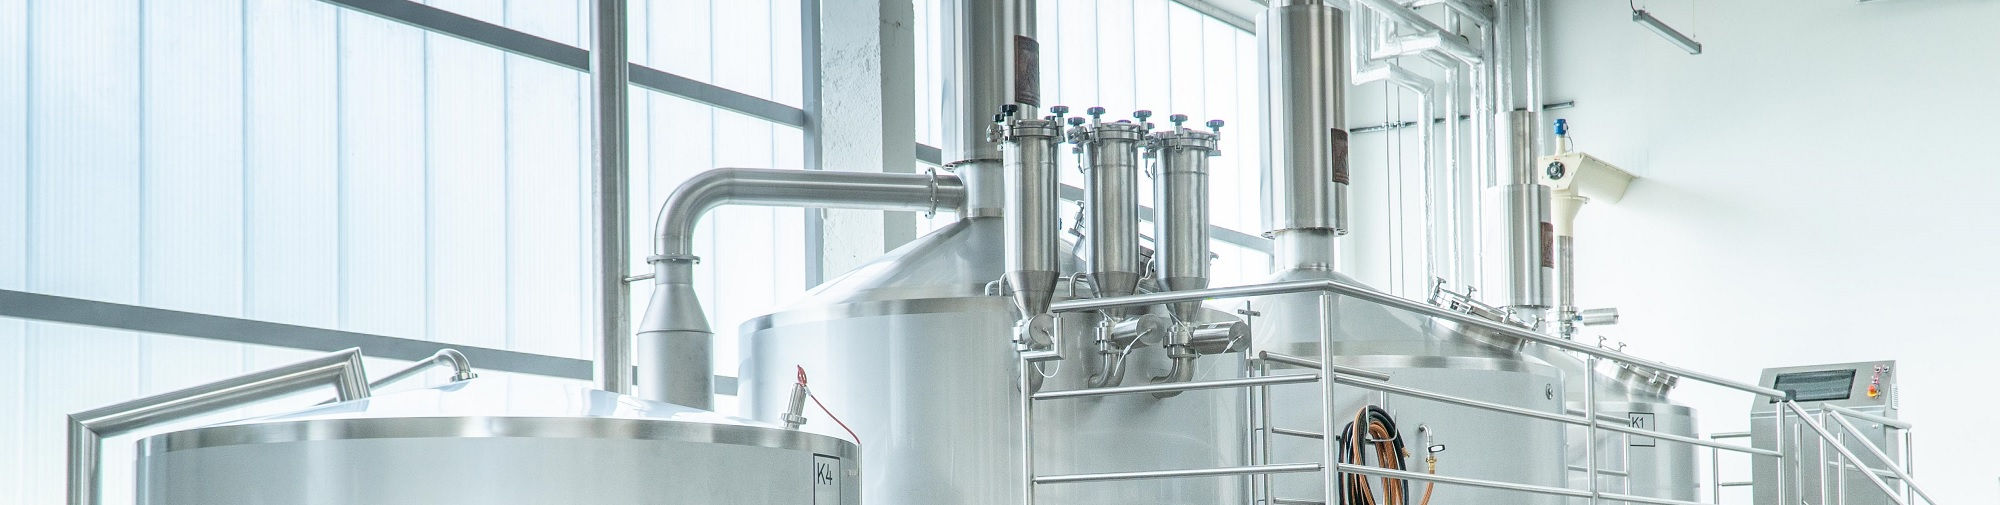 JBT_Header_Industry_brewery